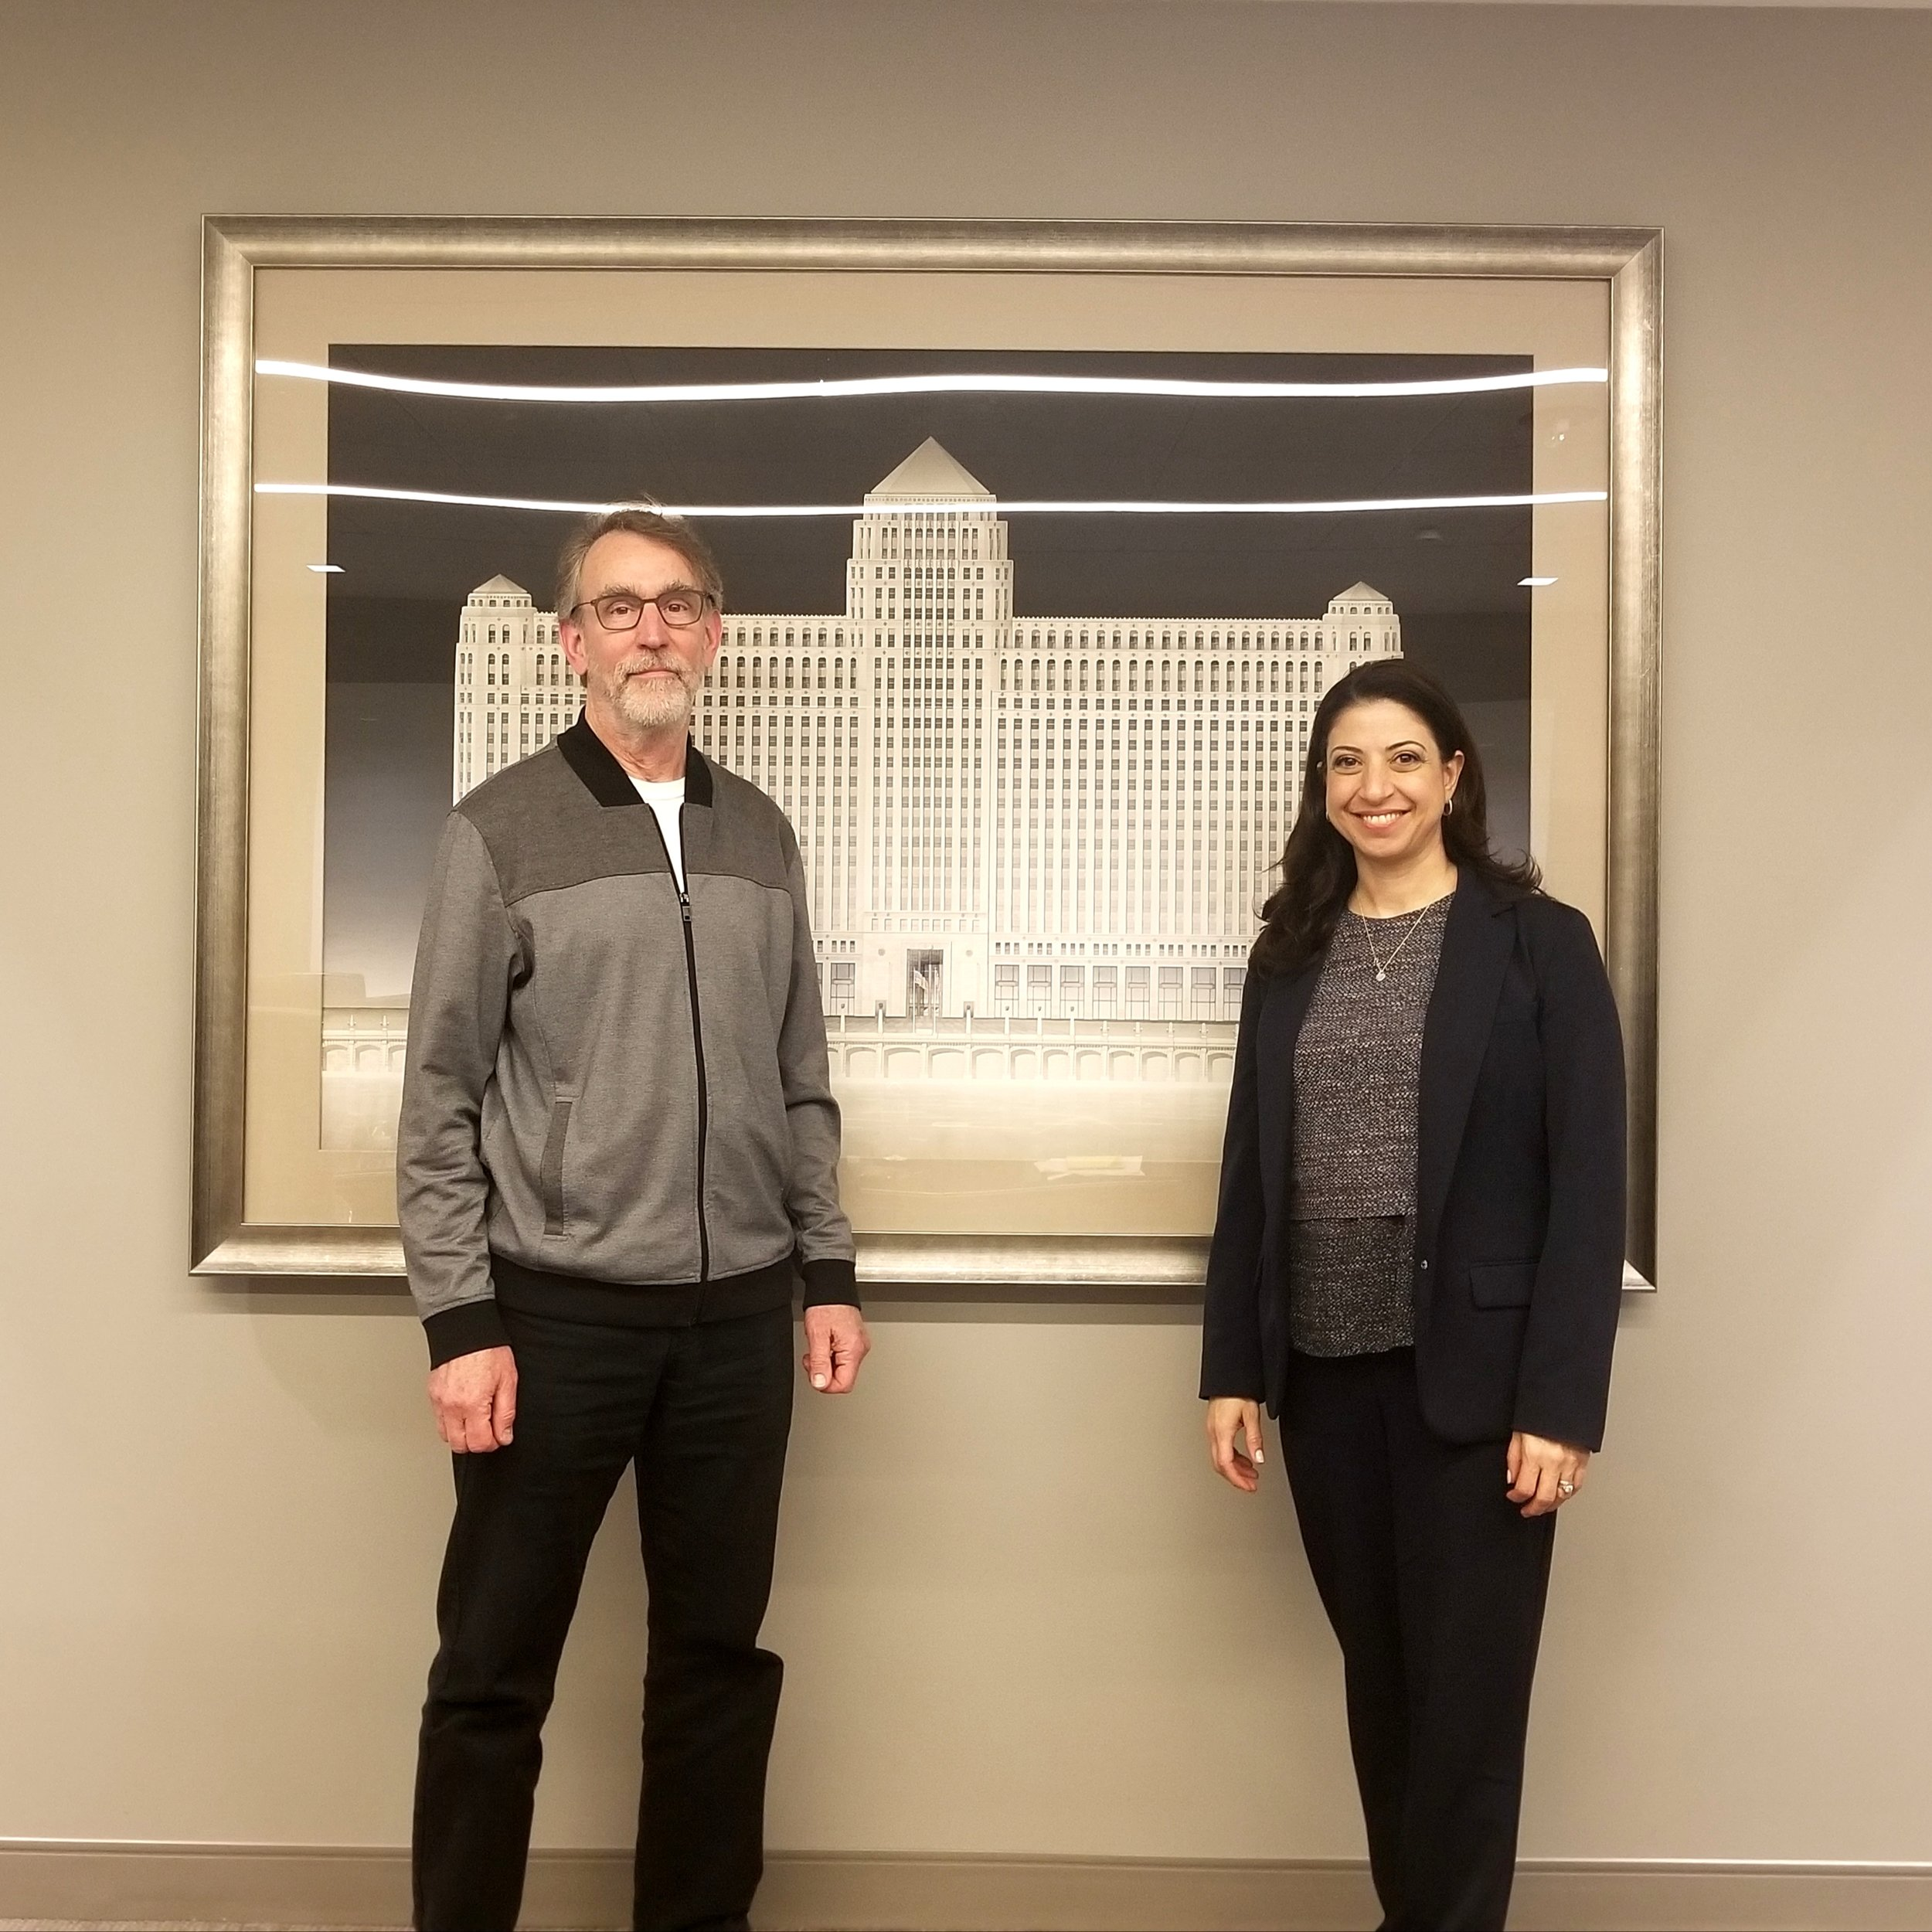 Media designer John Boesche and Art On theMart executive director Cynthia Noble